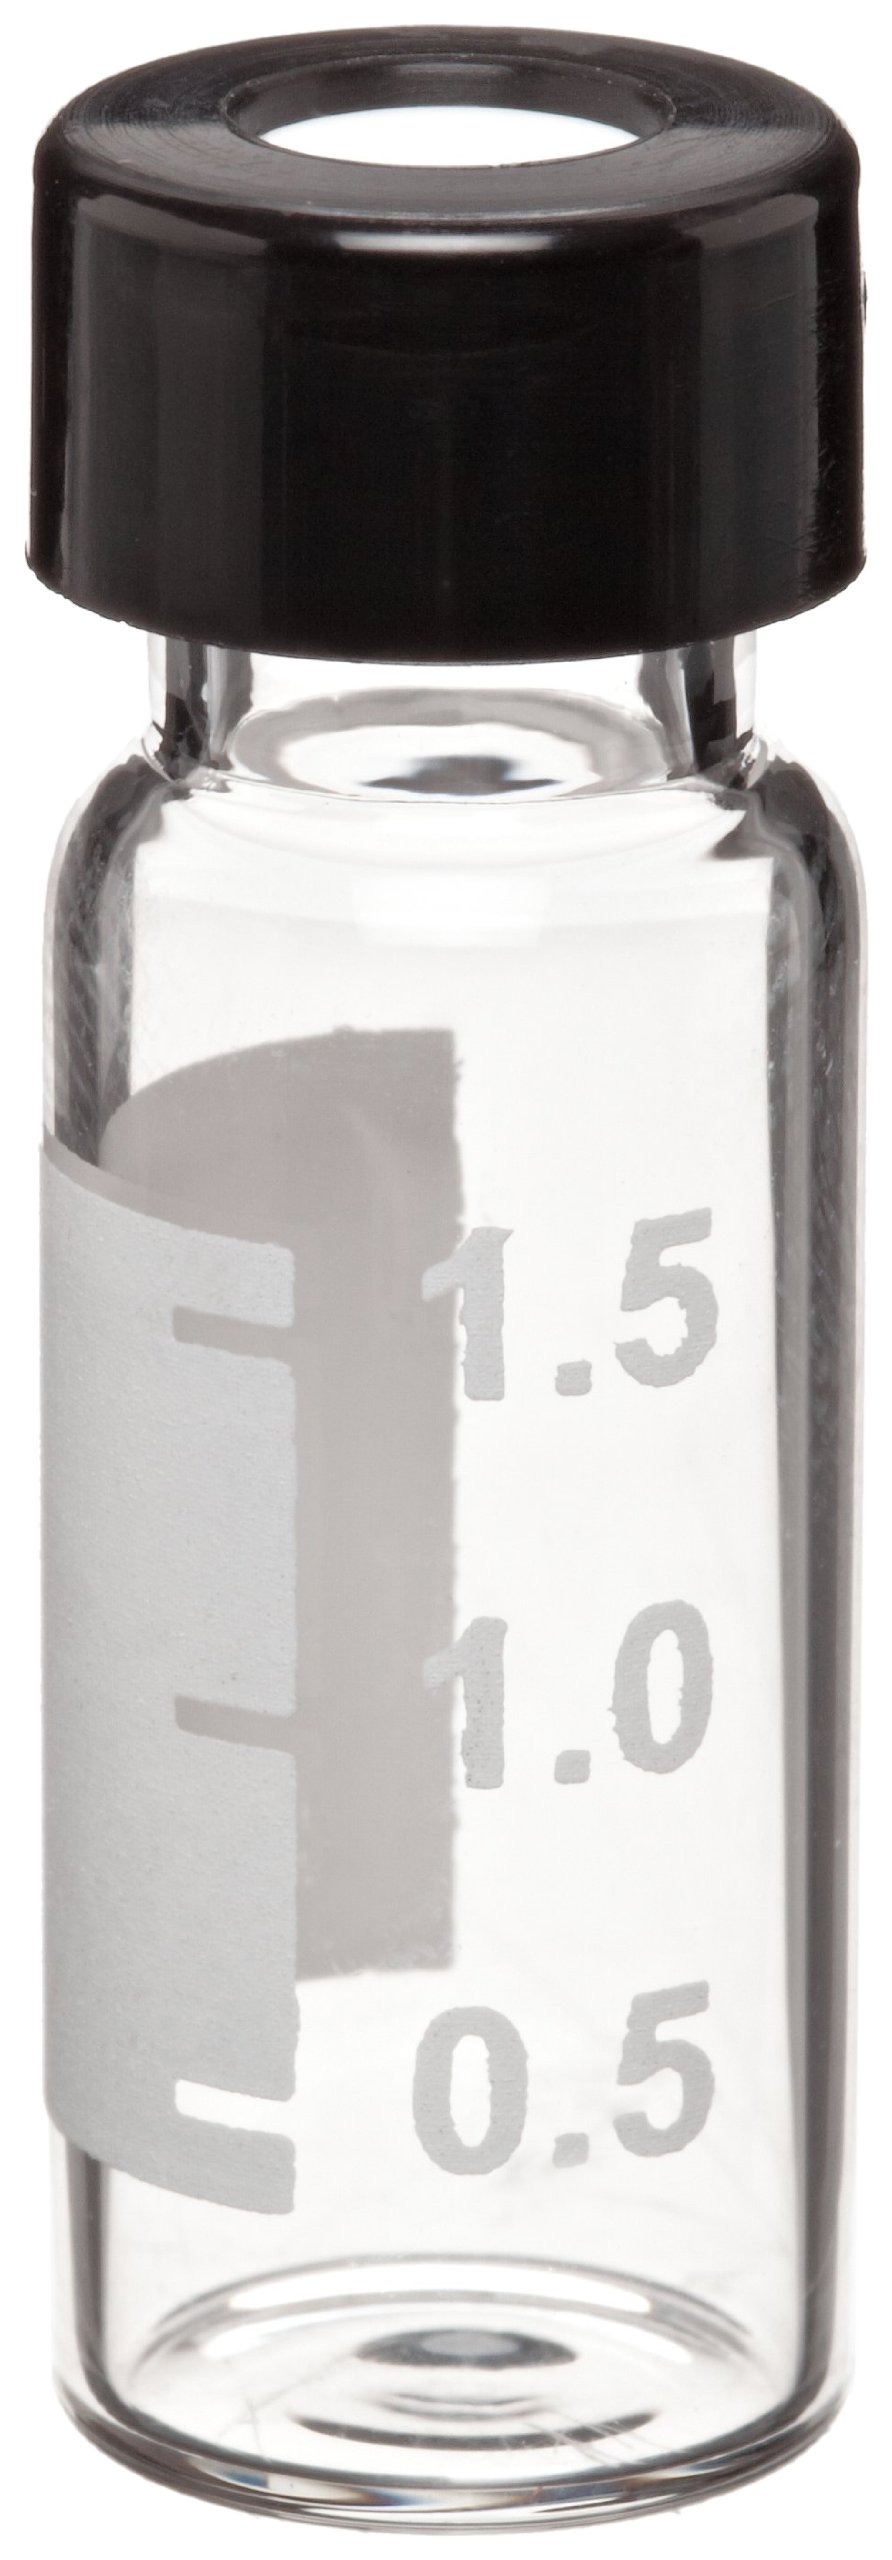 Wheaton W225151-06 Borosilicate Glass 1.8mL Writing Patch Vial with 0.010 PTFE Lined 9mm ABC Screw Cap, Clear/Natural (Case of 100)